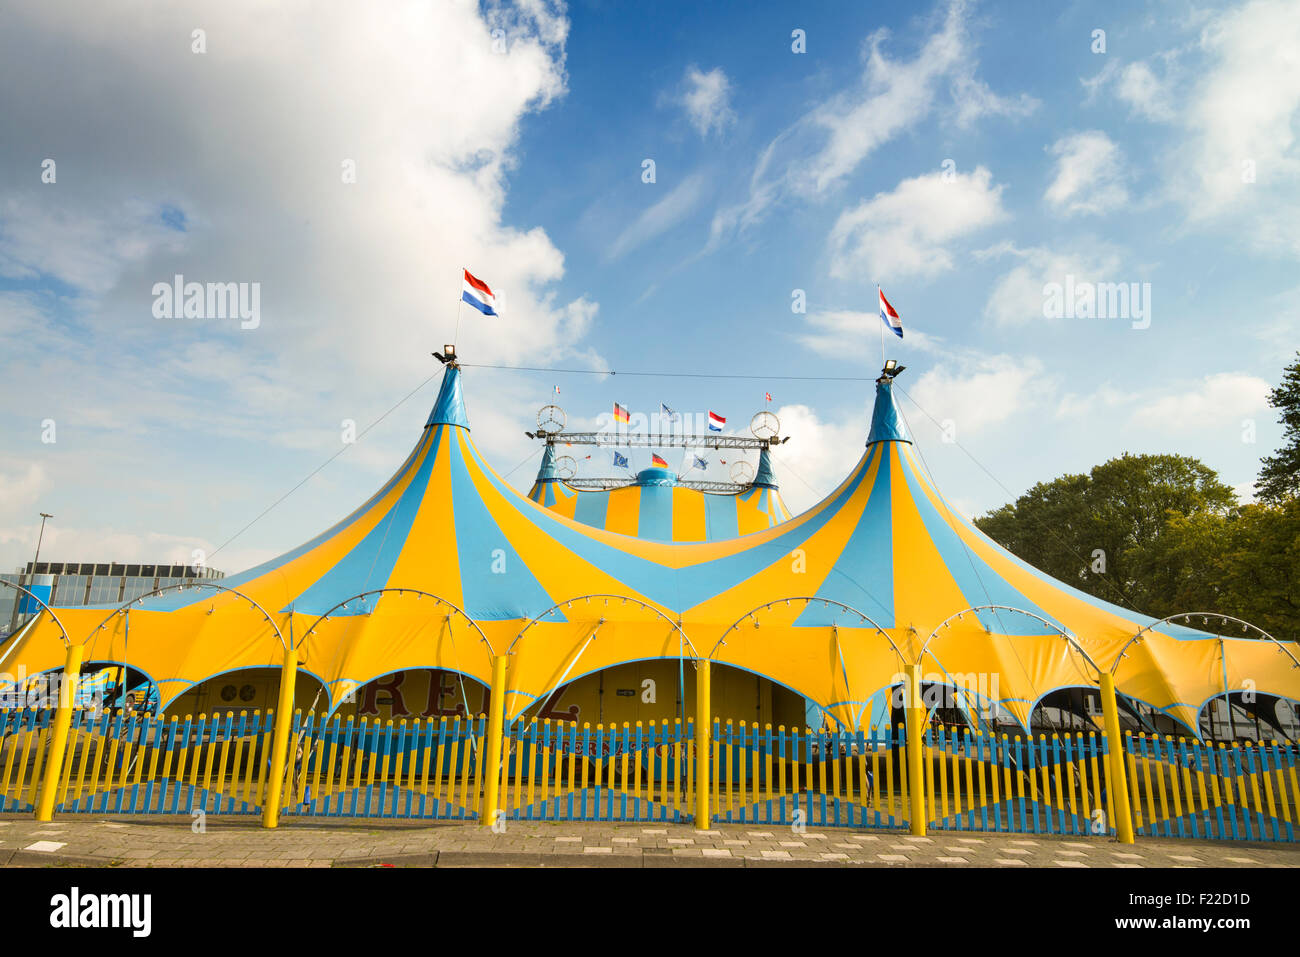 circus in town - Stock Image